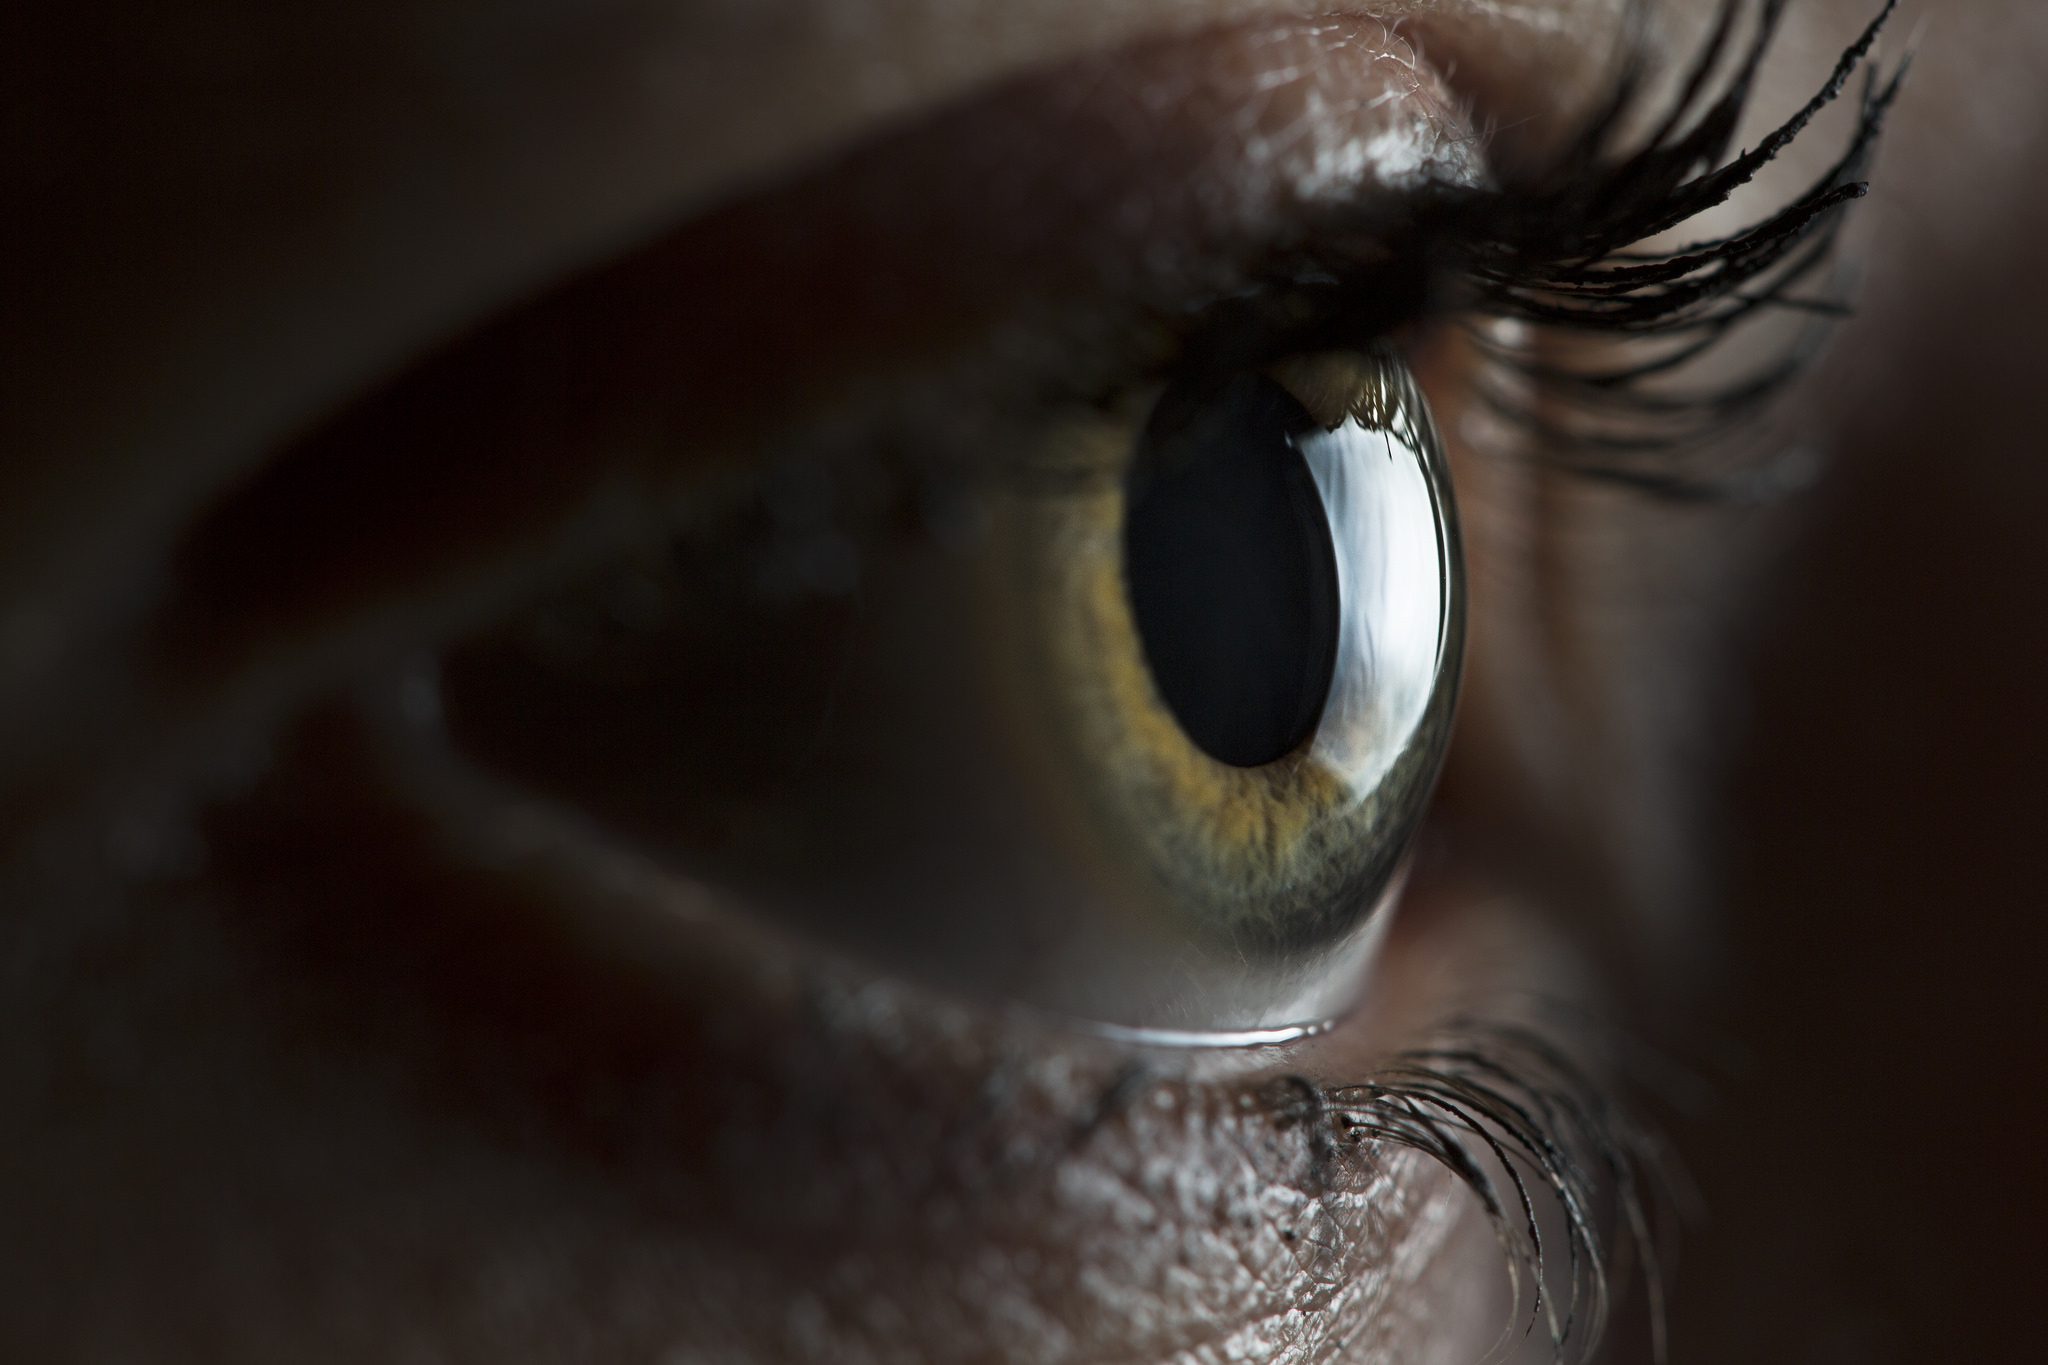 Eye Closeup with 24in Softbox